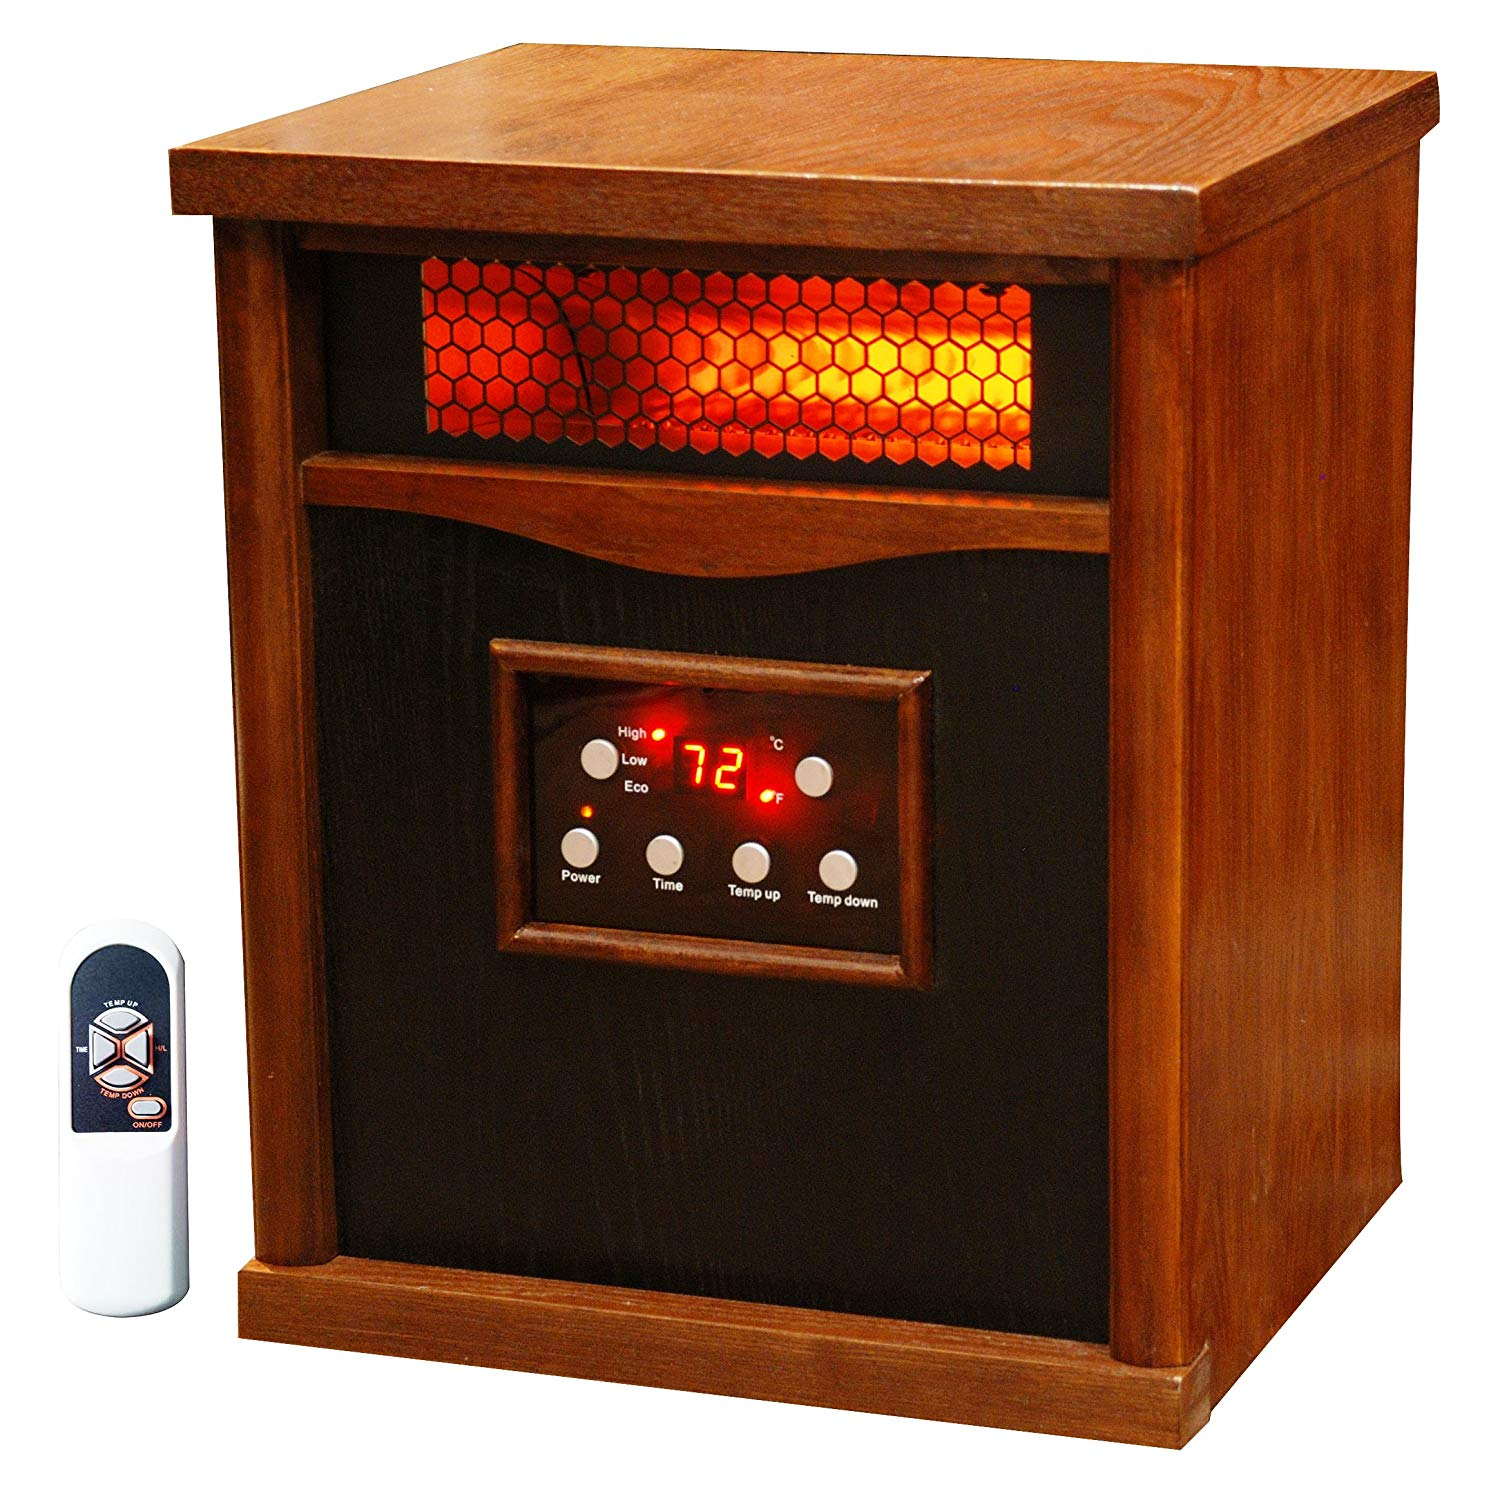 LifeSmart best space heater